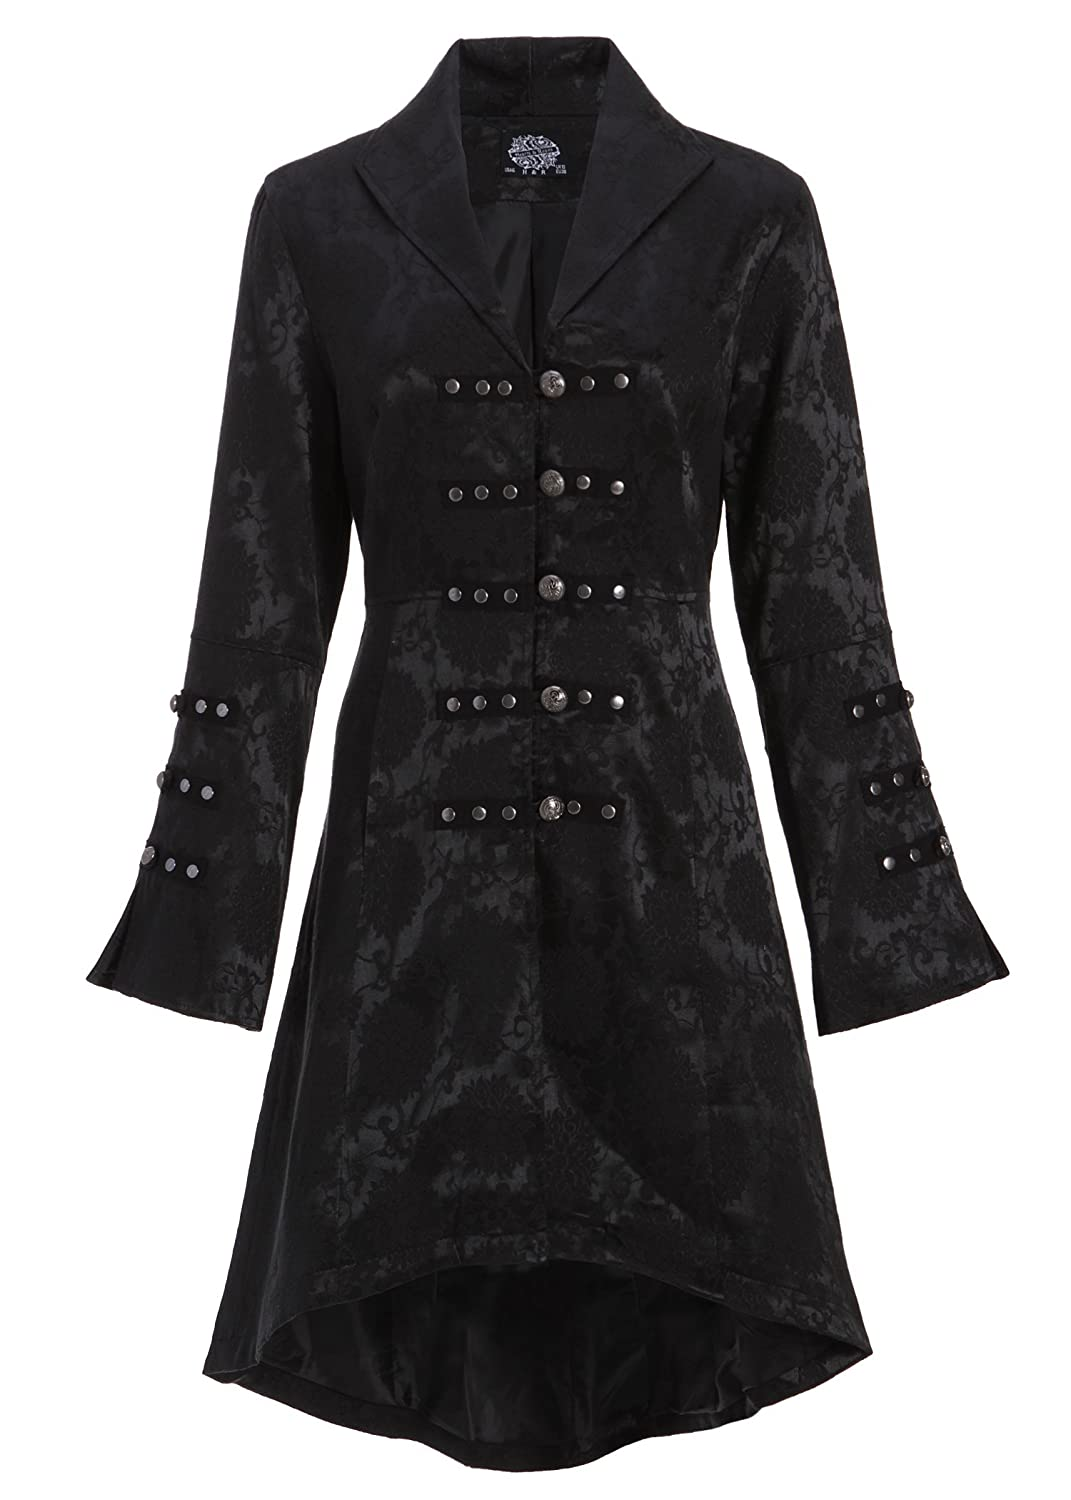 Black Brocade Gothic Steampunk Coat